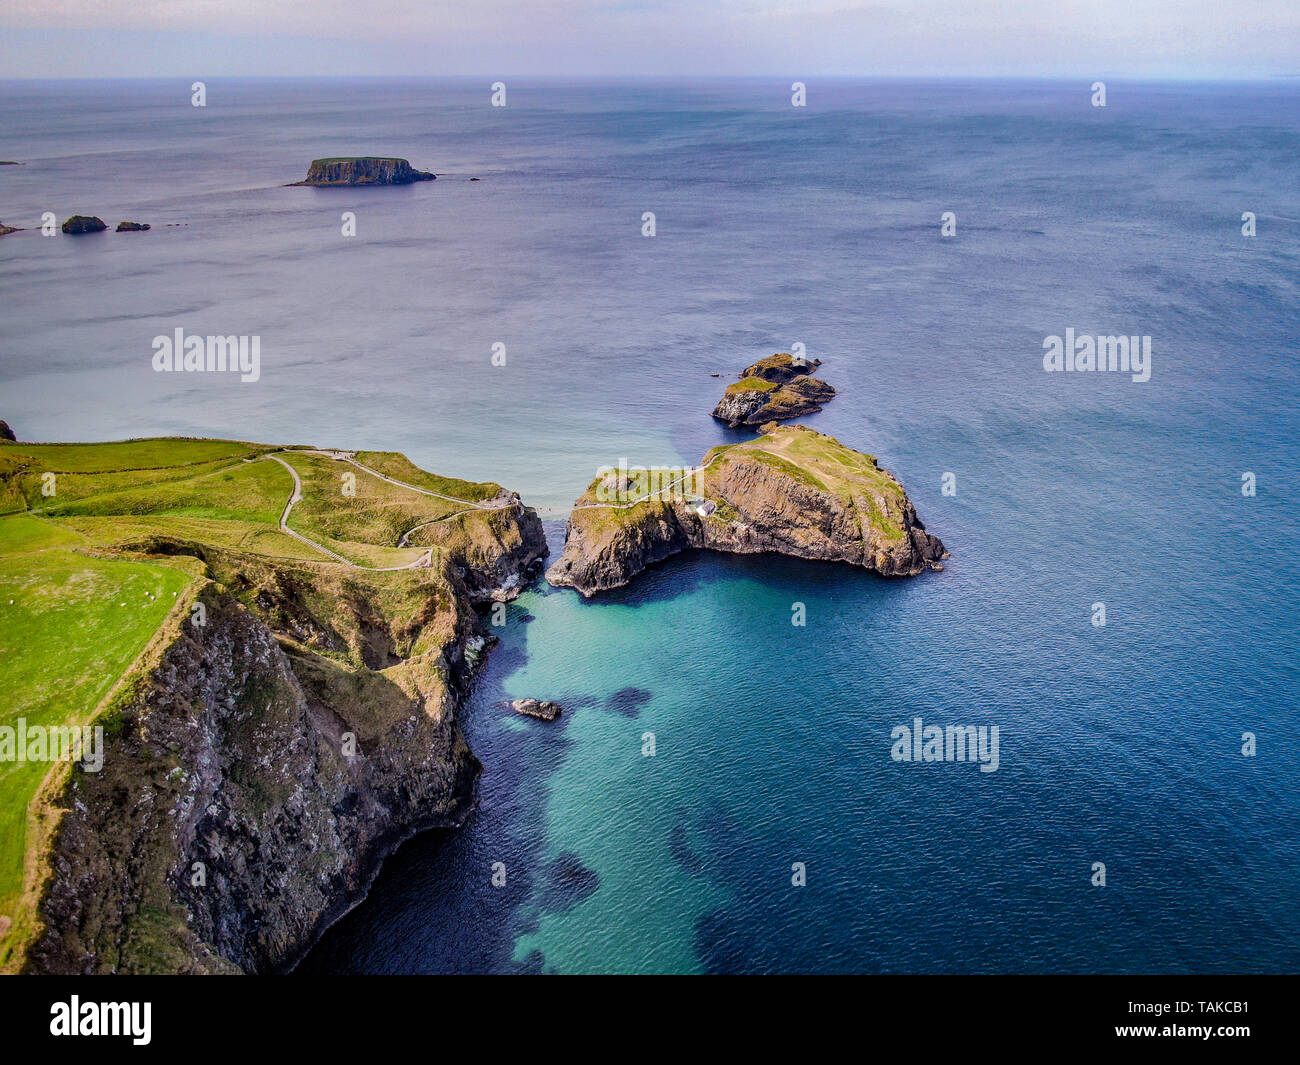 Aerial view over Carrick-A-Rede Rope Bridge in North Ireland - aerial photography - Stock Image